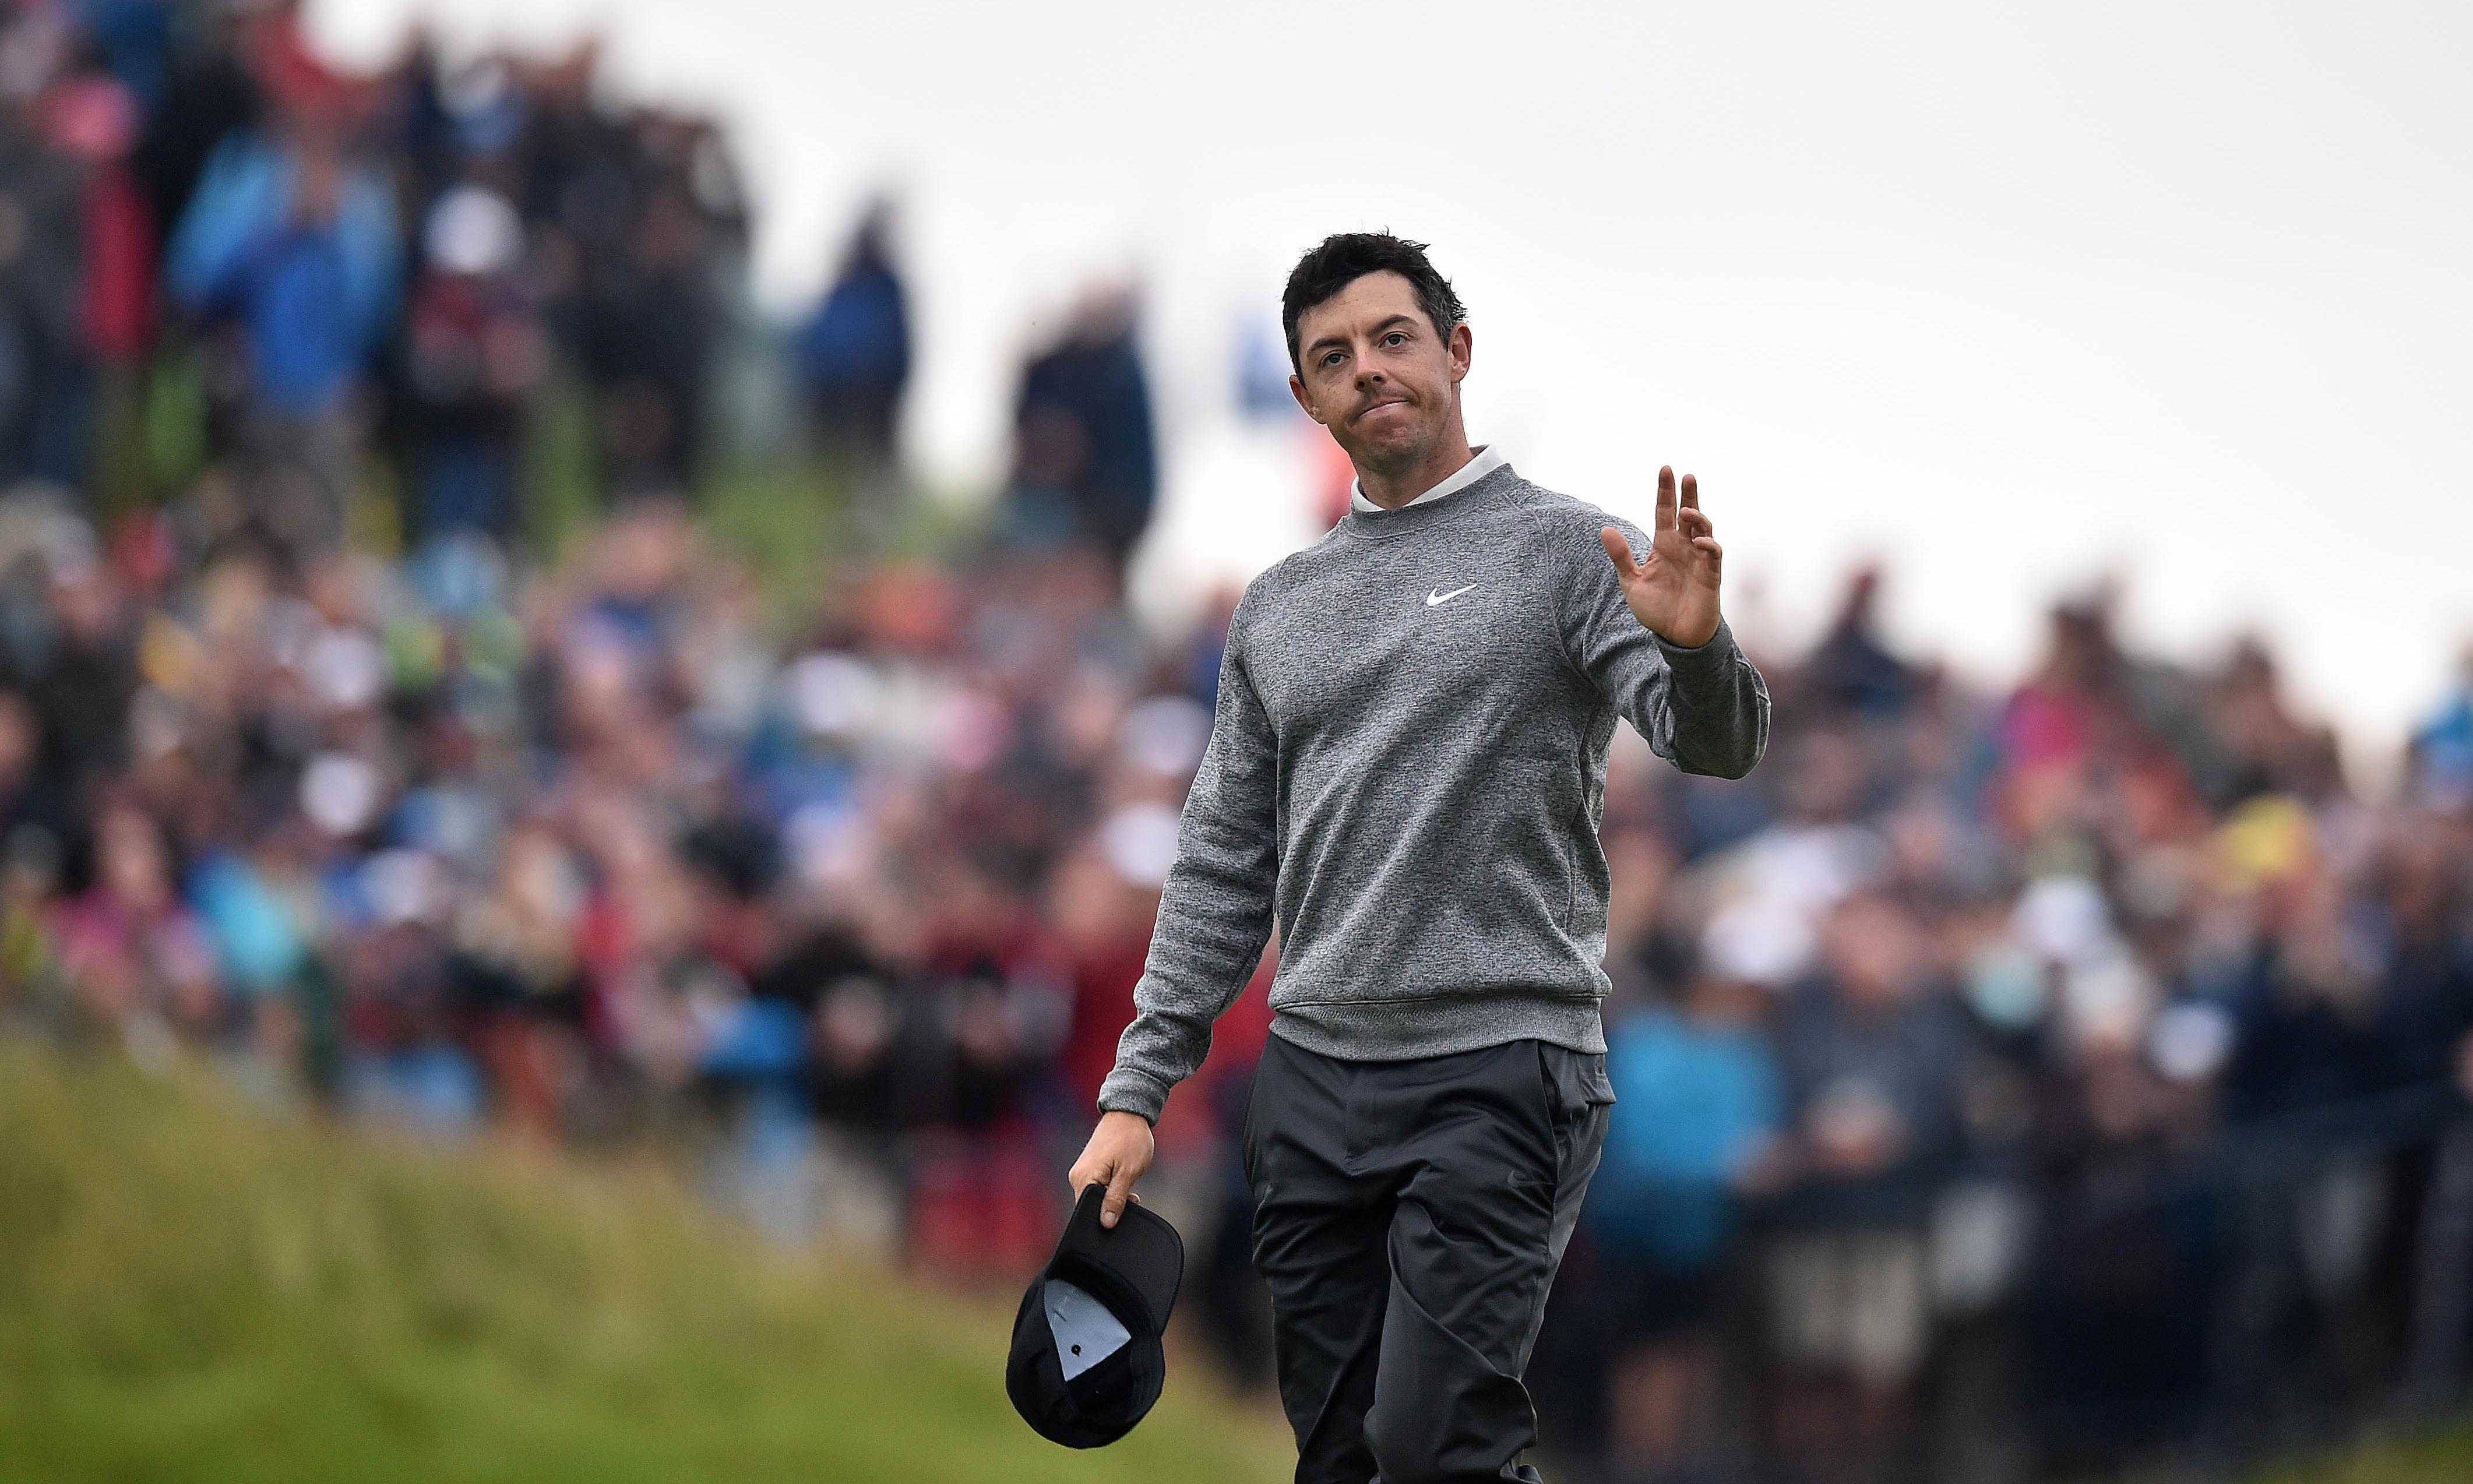 Rory McIlroy's Open fightback falls just short as Shane Lowry takes share of lead